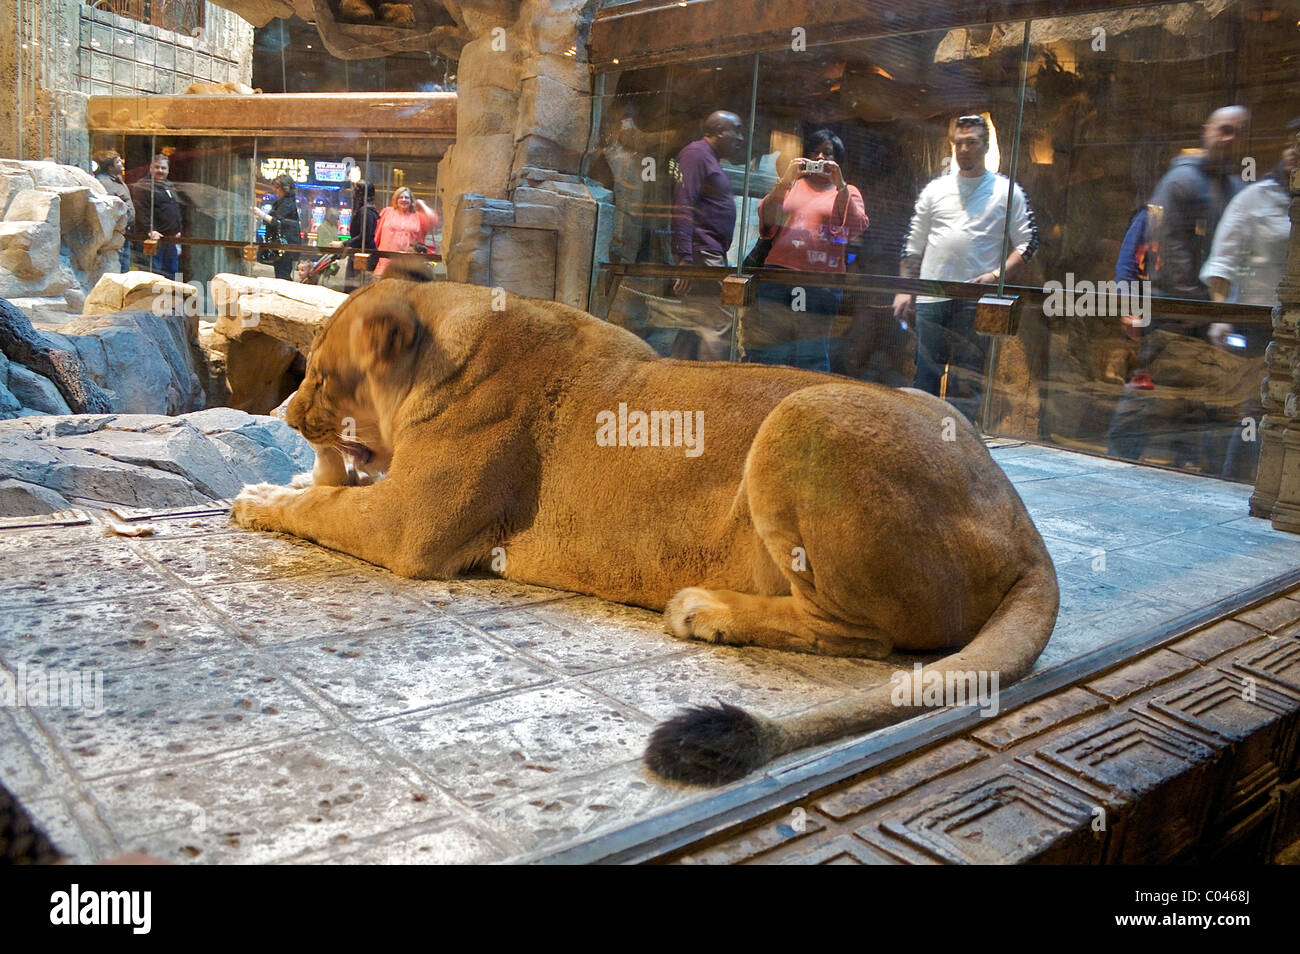 People Watch A Lion Inside The Lion Habitat At The Mgm Grand Hotel Stock Photo Alamy